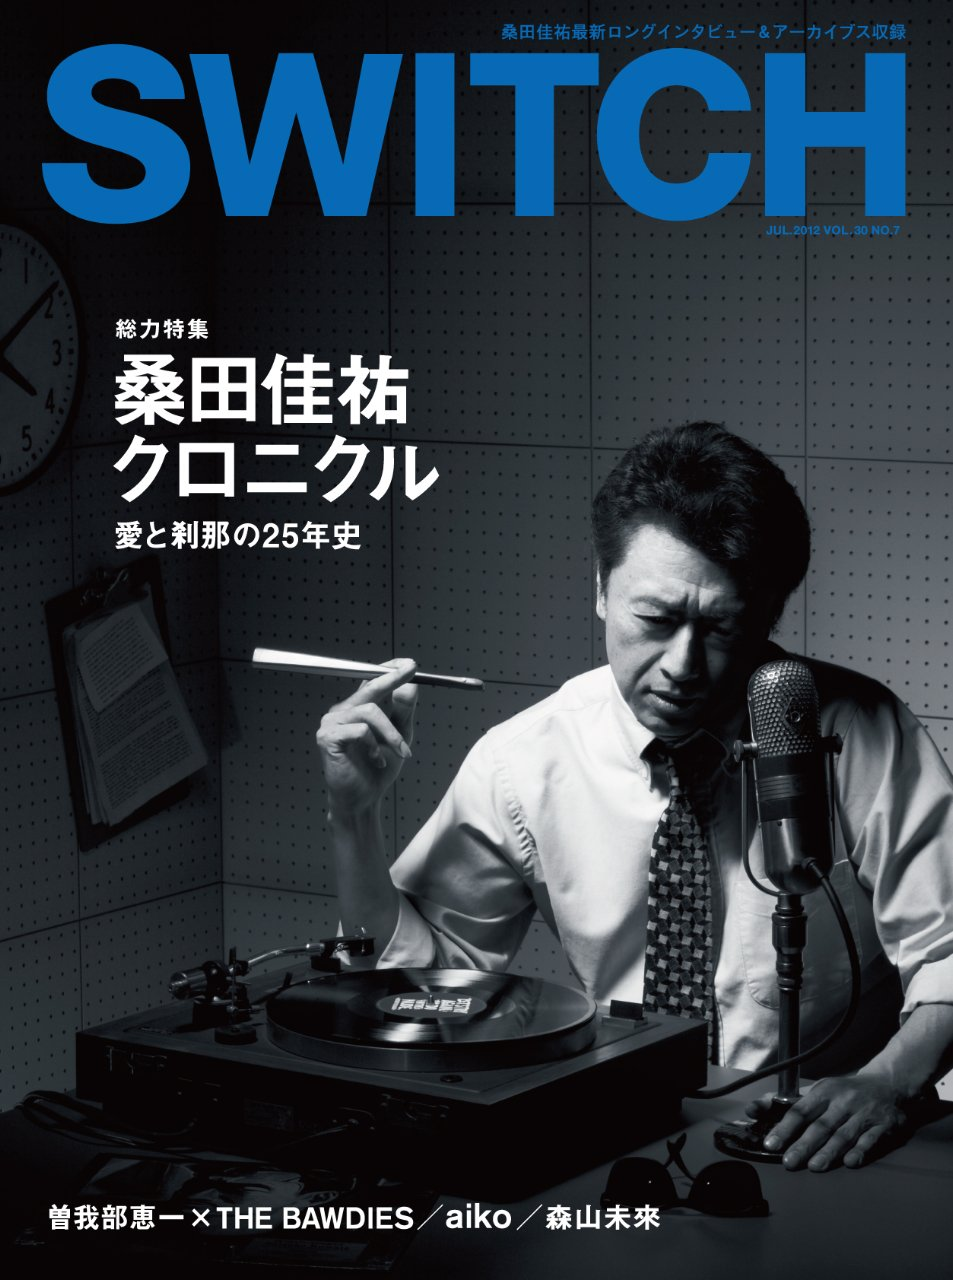 SWITCH Vol.30 No.7 Special Features: Kuwata Keisuke Chronicle (2012) ISBN: 4884183347 [Japanese Import] ebook